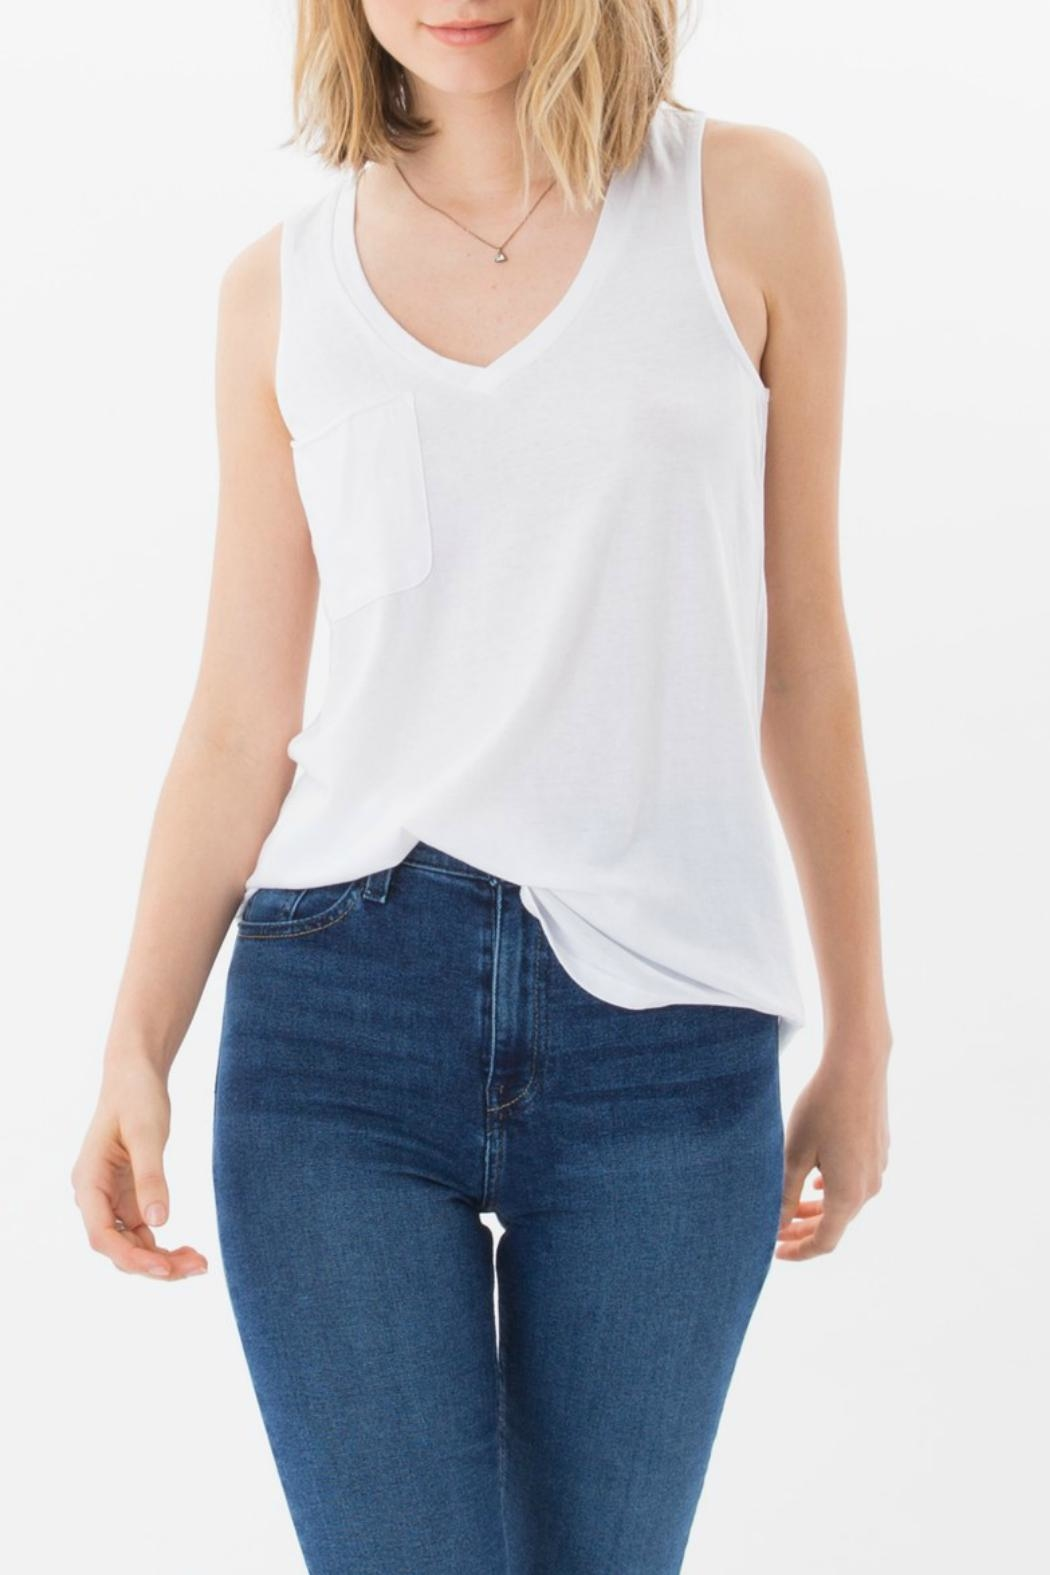 Z Supply Pocket Racerback Tank Top From New Jersey By